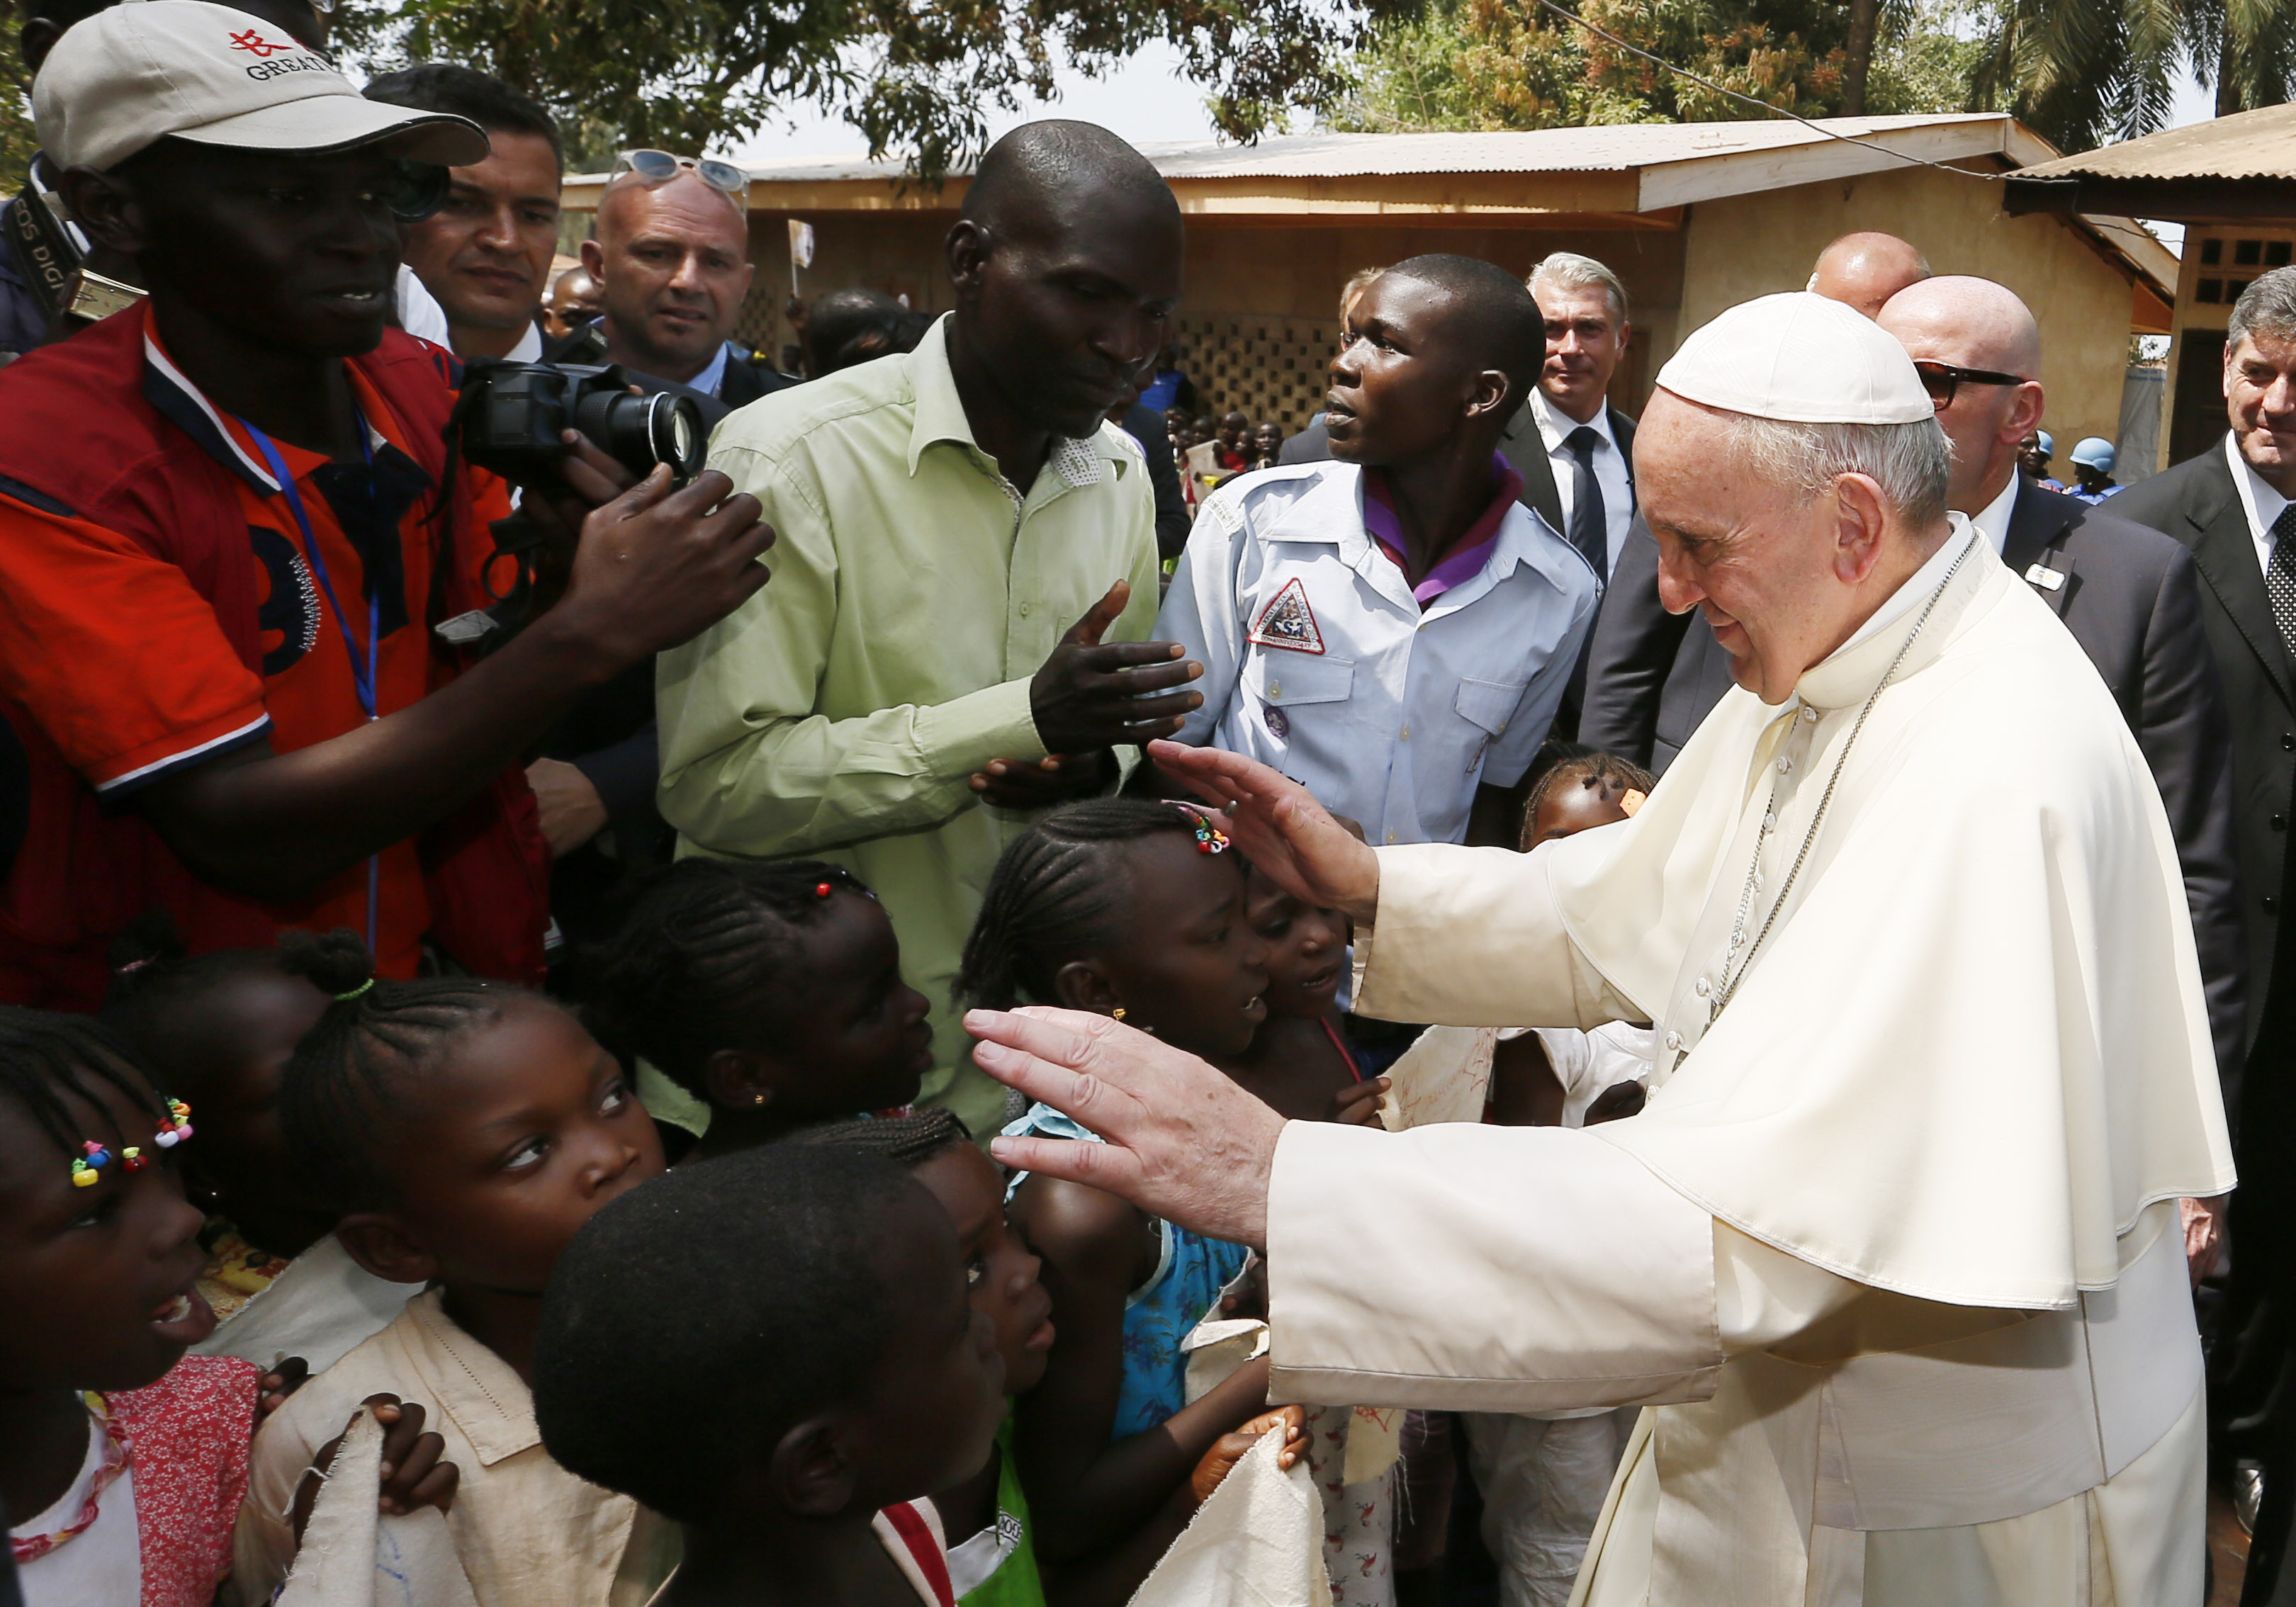 Pope Francis greets children as he visits a refugee camp in Bangui, Central African Republic, Nov. 29. (CNS photo/Paul Haring)